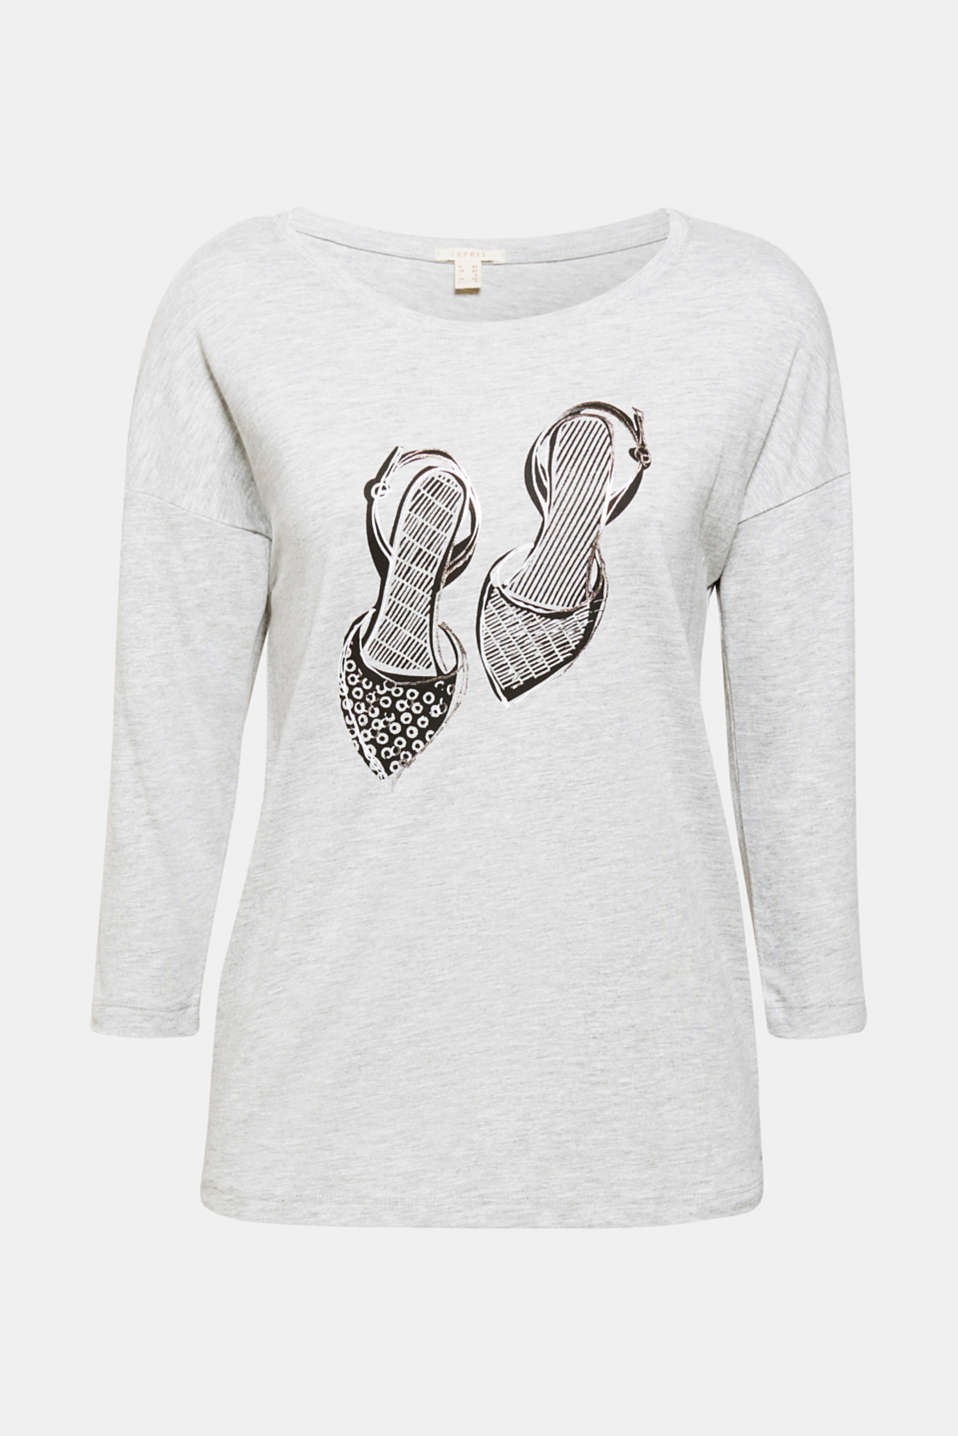 A new pair of high heels by any chance!? This sporty melange T-shirt comes with fine glitter prints. Best to grab it straight away!